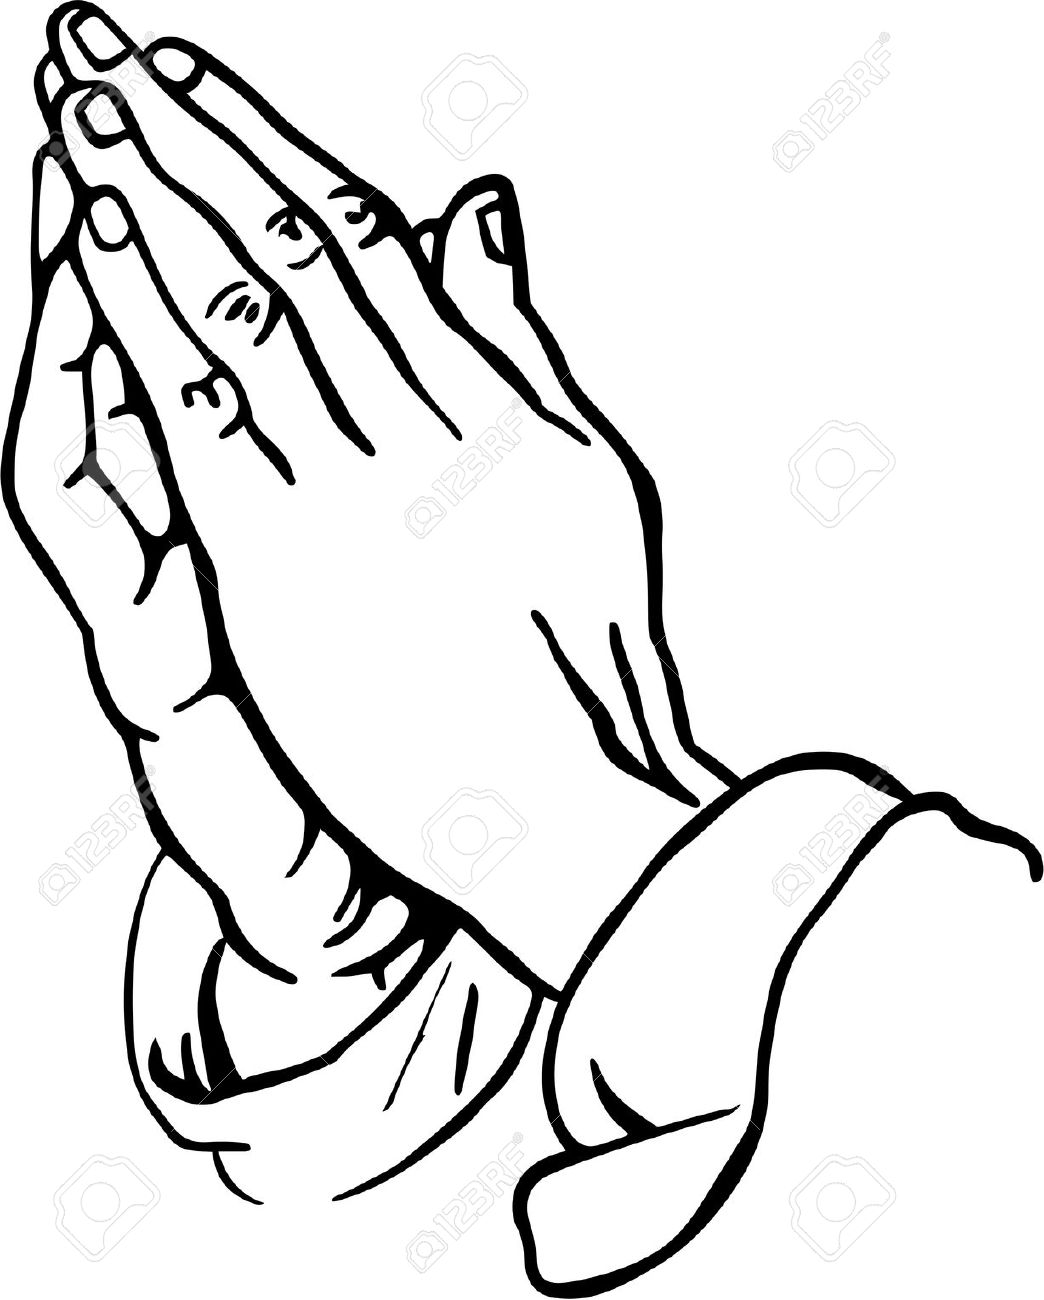 praying hands clipart stock photo picture and royalty free image rh 123rf com prayer clip art for kids prayer clip art free